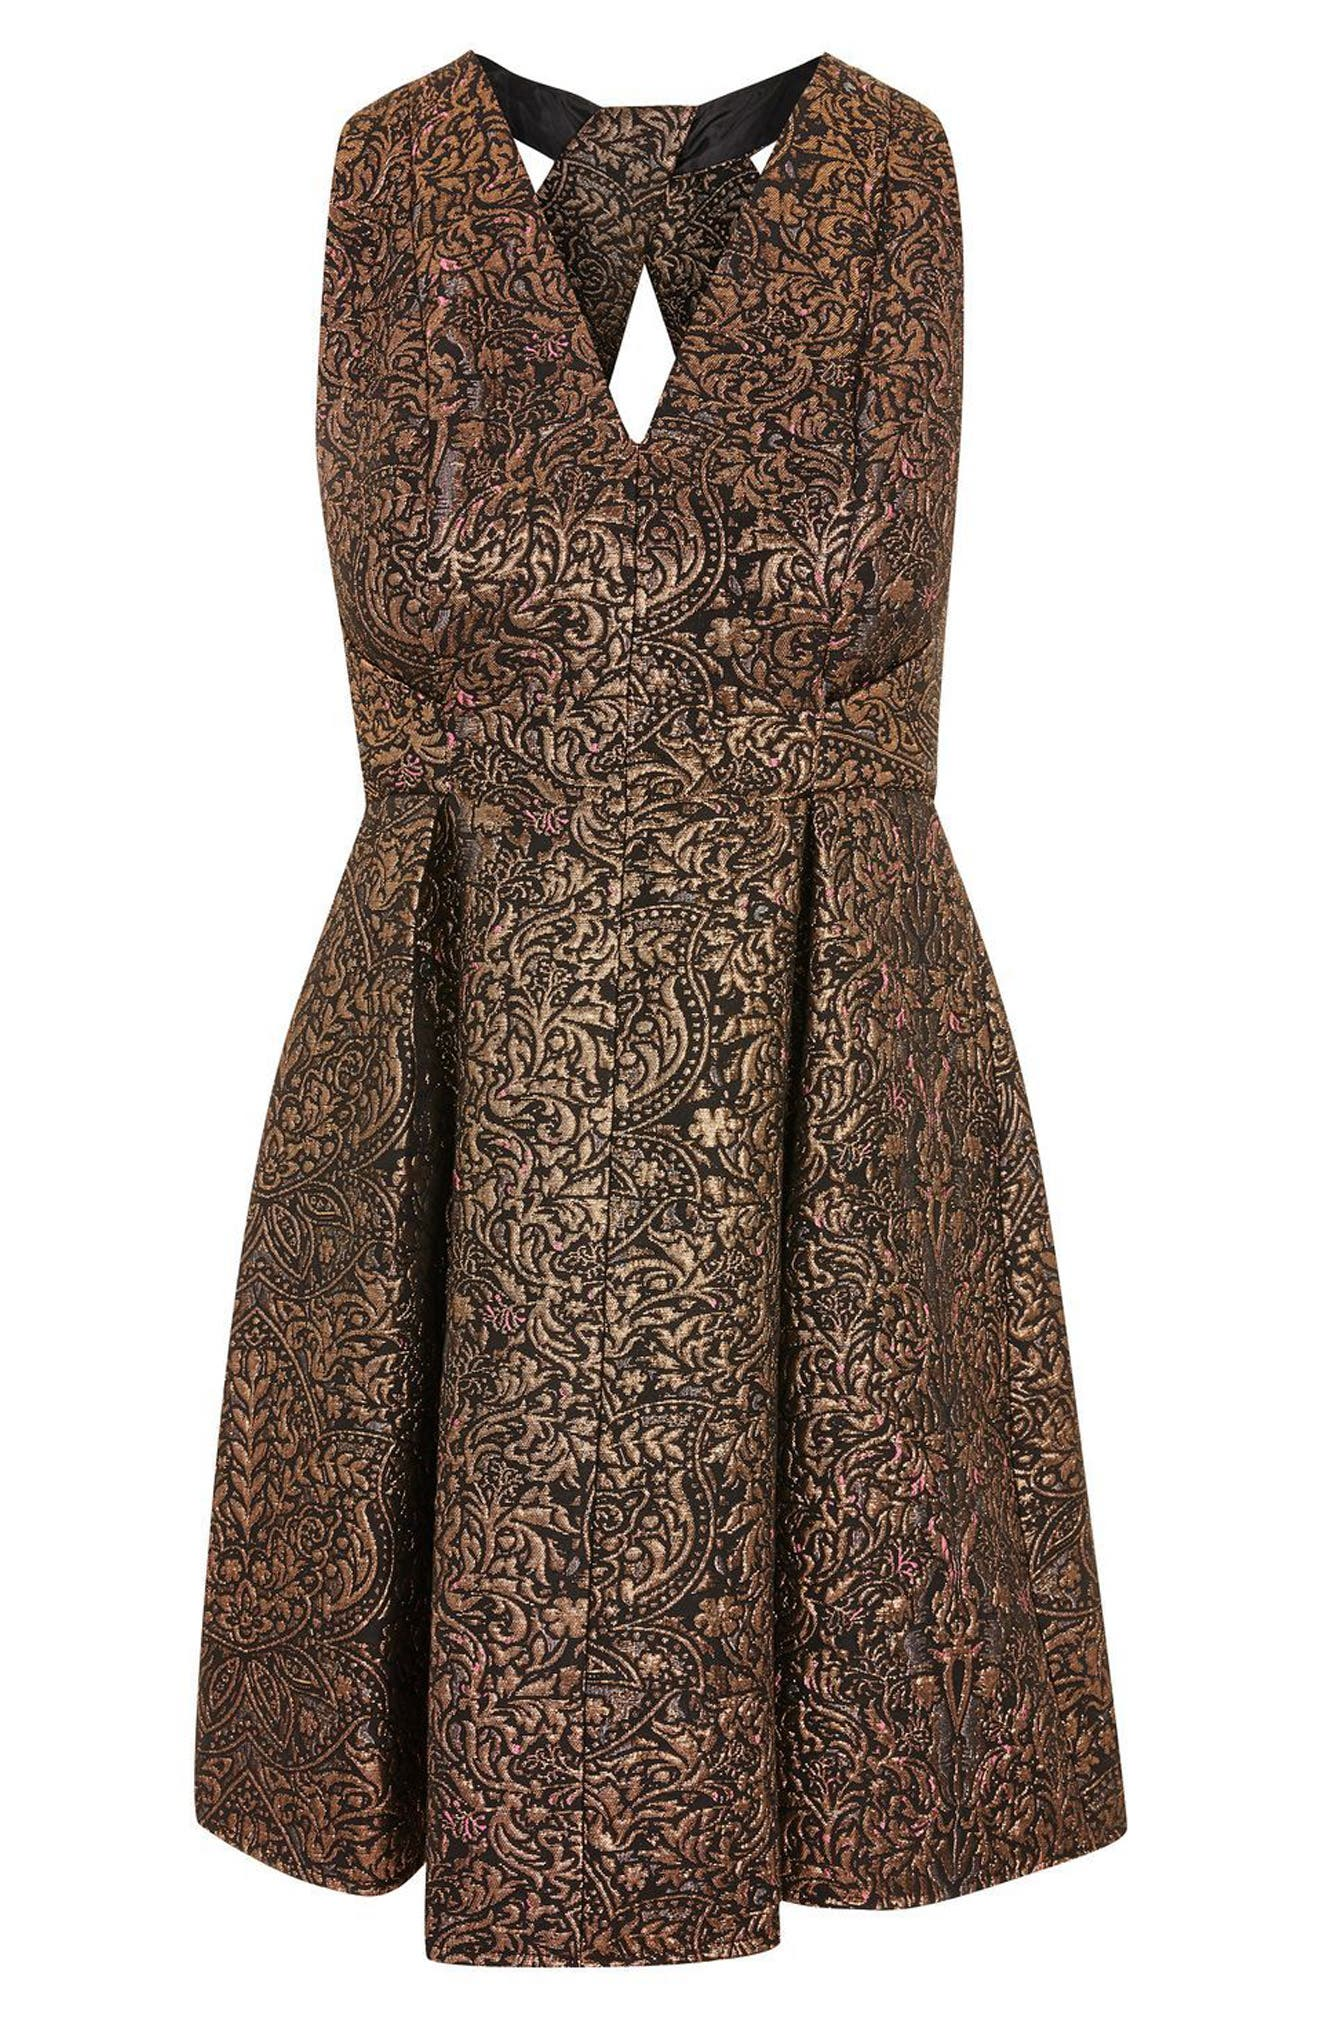 Opulent Jacquard Skater Dress,                             Alternate thumbnail 3, color,                             220